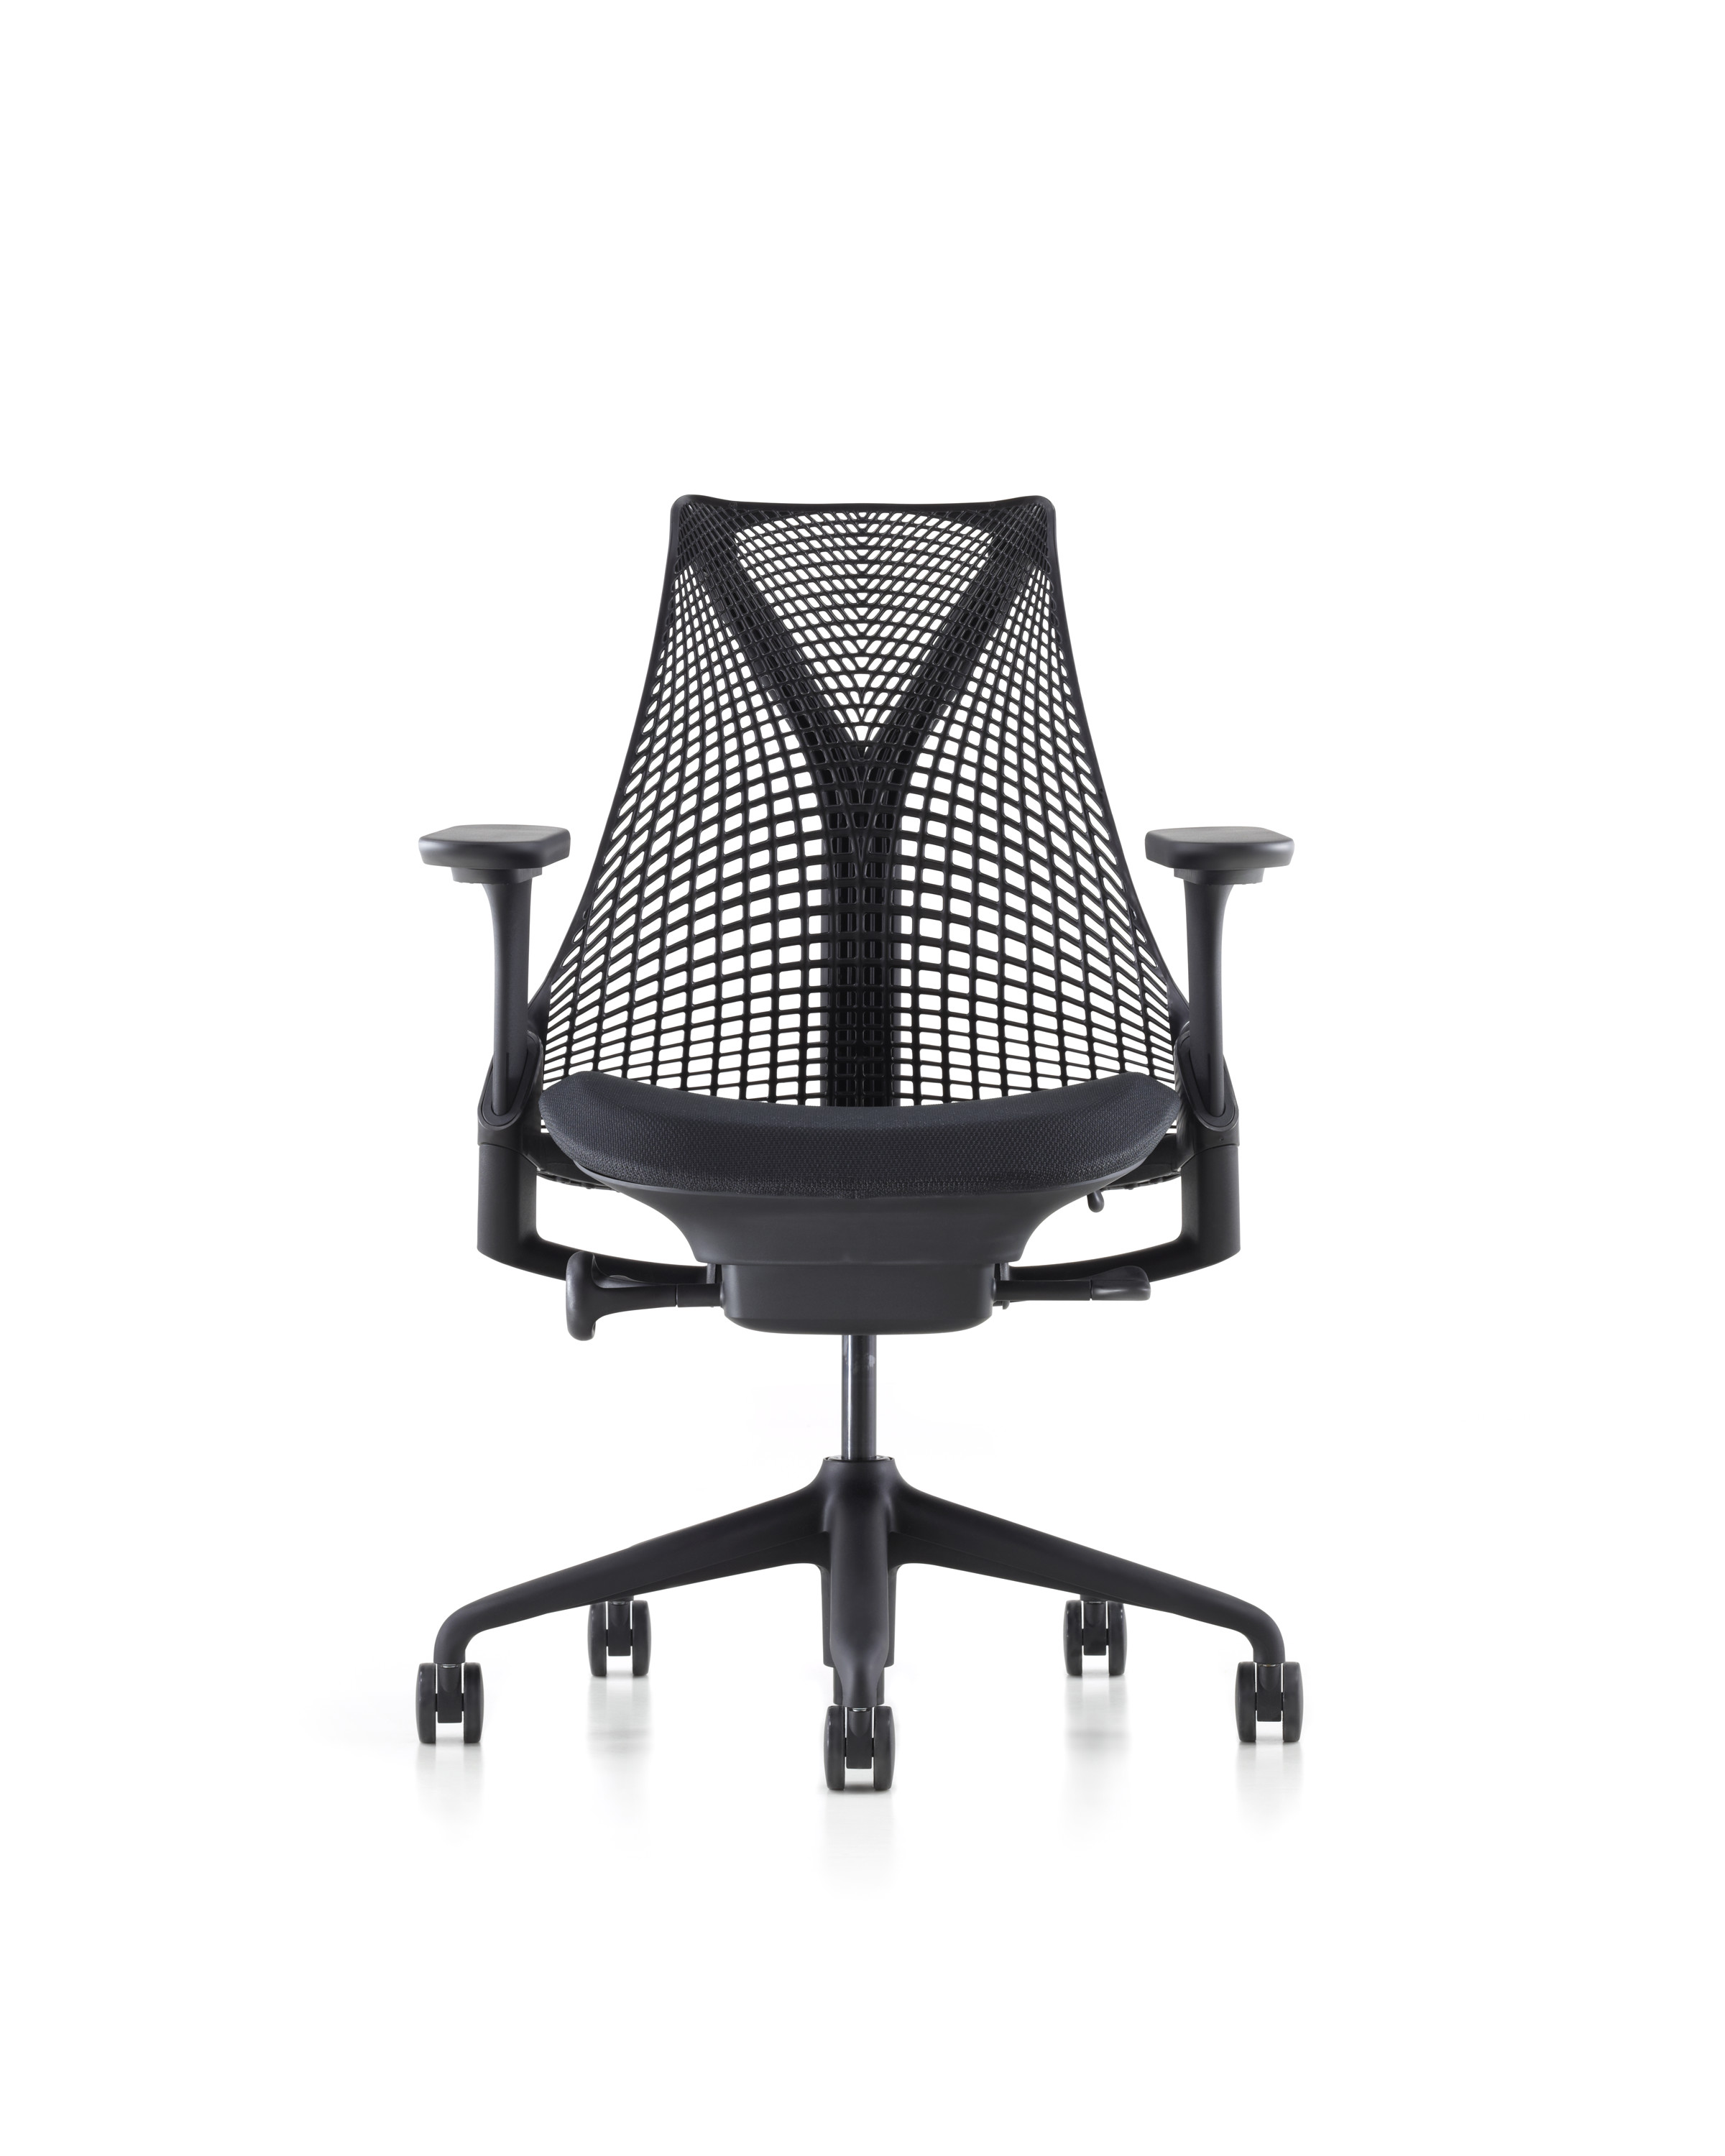 Image of Sayl Chair by Herman Miller